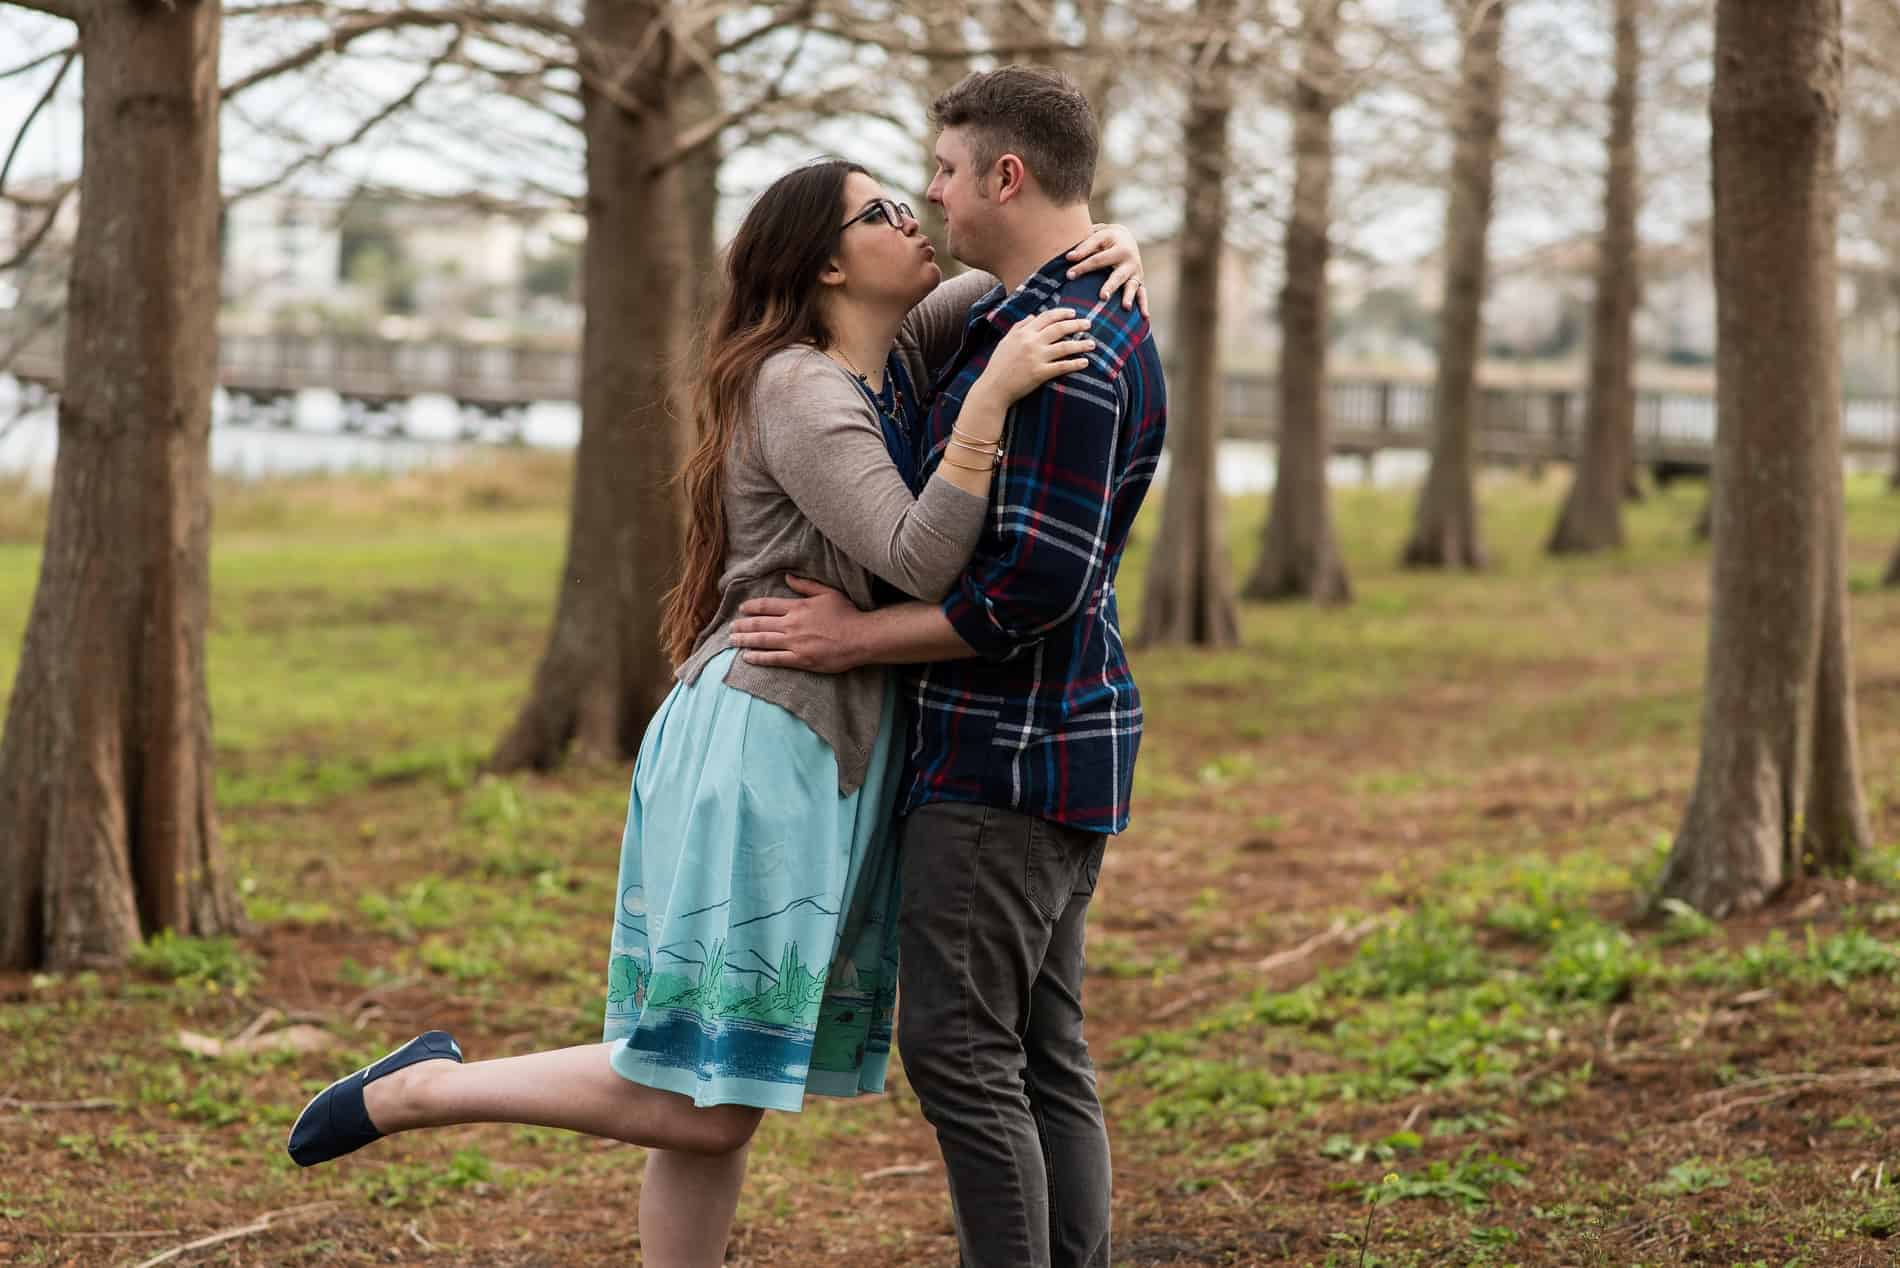 Bill Frederick Park hosts a Star Wars Engagement Session